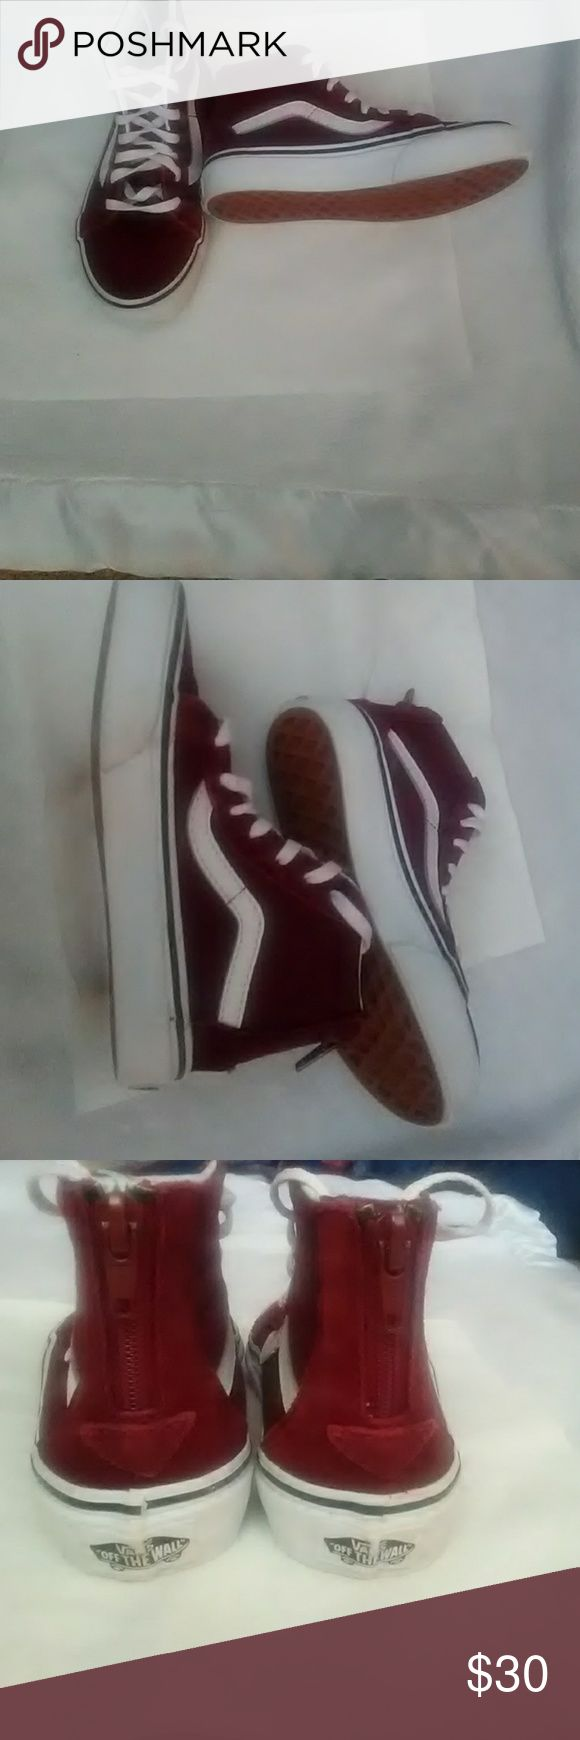 VANS These boys high top Vans look brand new! They have only been worn once. The color is burgundy Vans Shoes